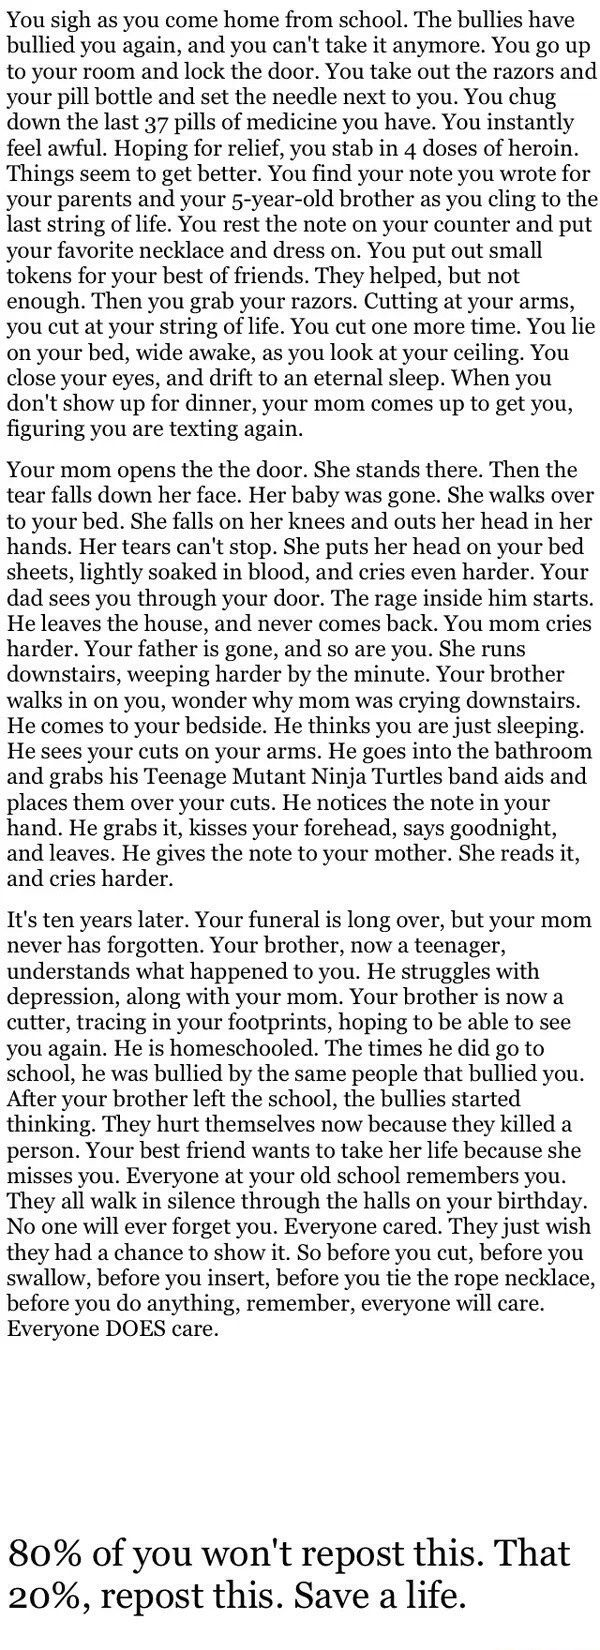 I cried. I love you. Whoever reads this. I love you and you matter. Also you don't need to repost to show you care. I'm reposting because I am against bullying and it's not right.